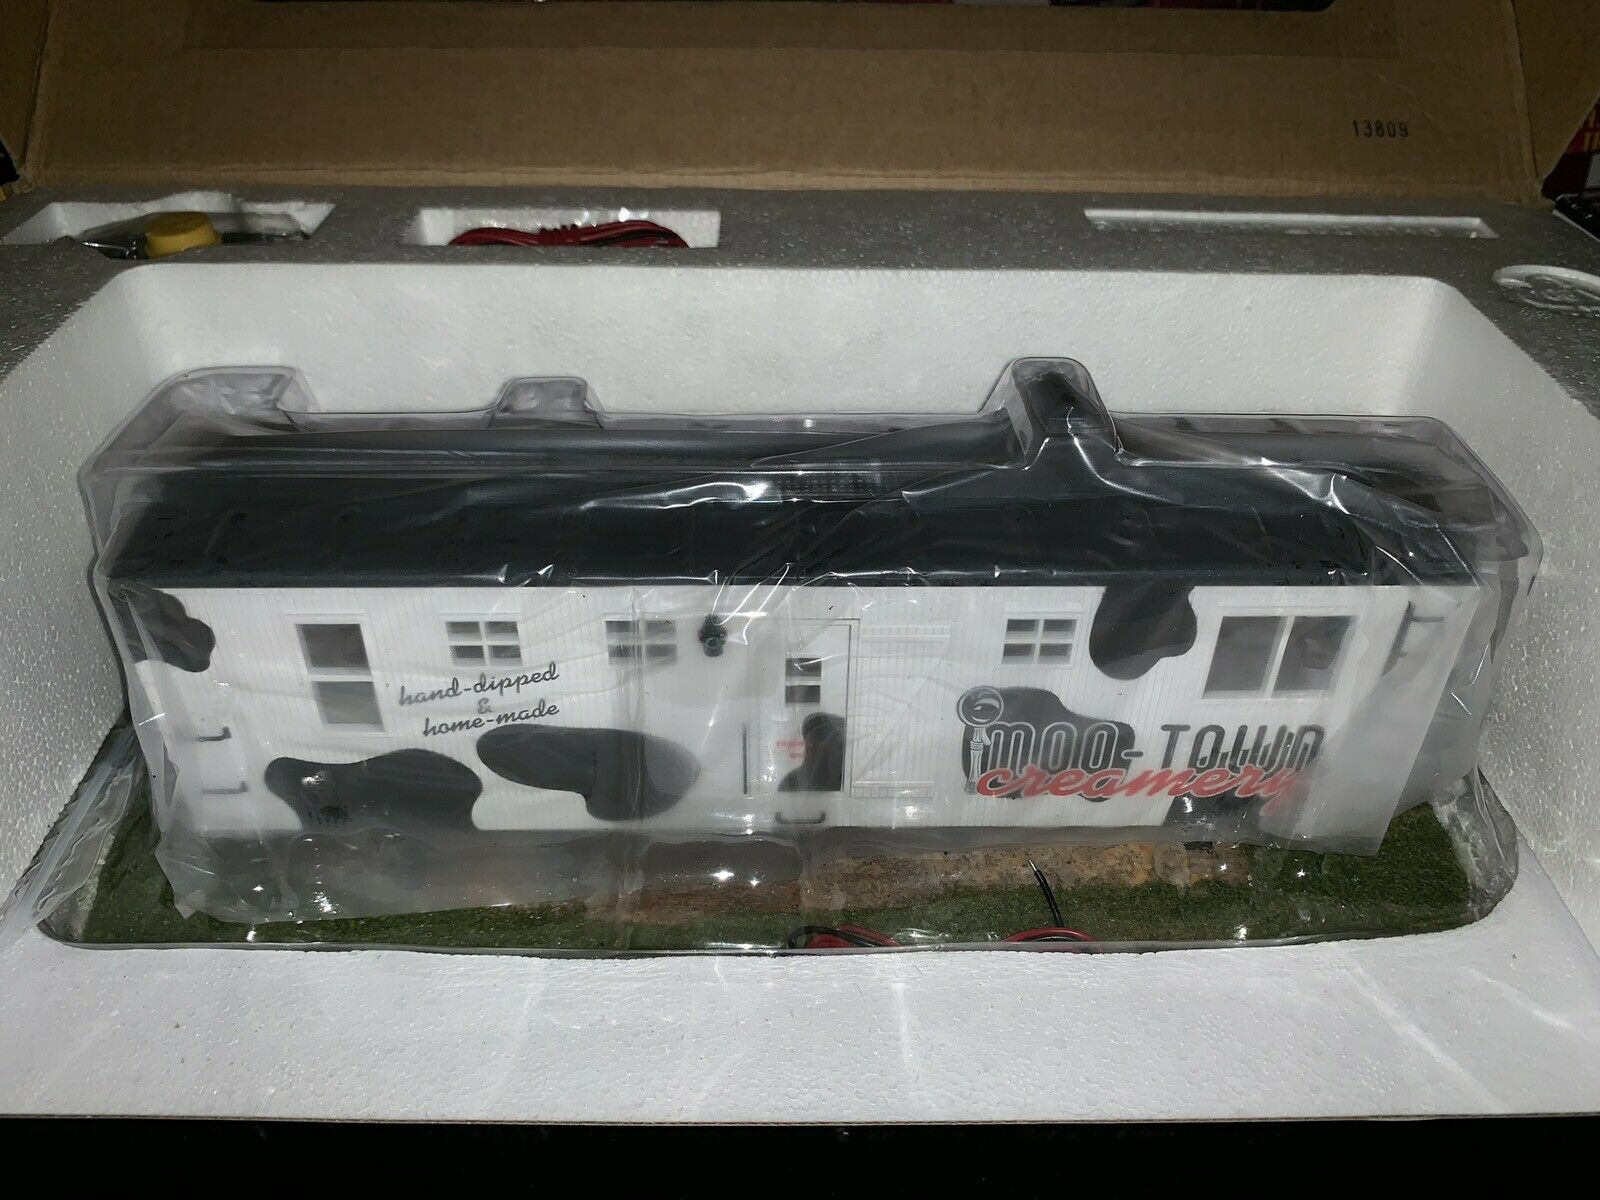 K-LINE BY LIONEL MOO TOWN CREAMERY ICE CREAM SHOP BUNK CAR SMOKING ACCESSORY NEW